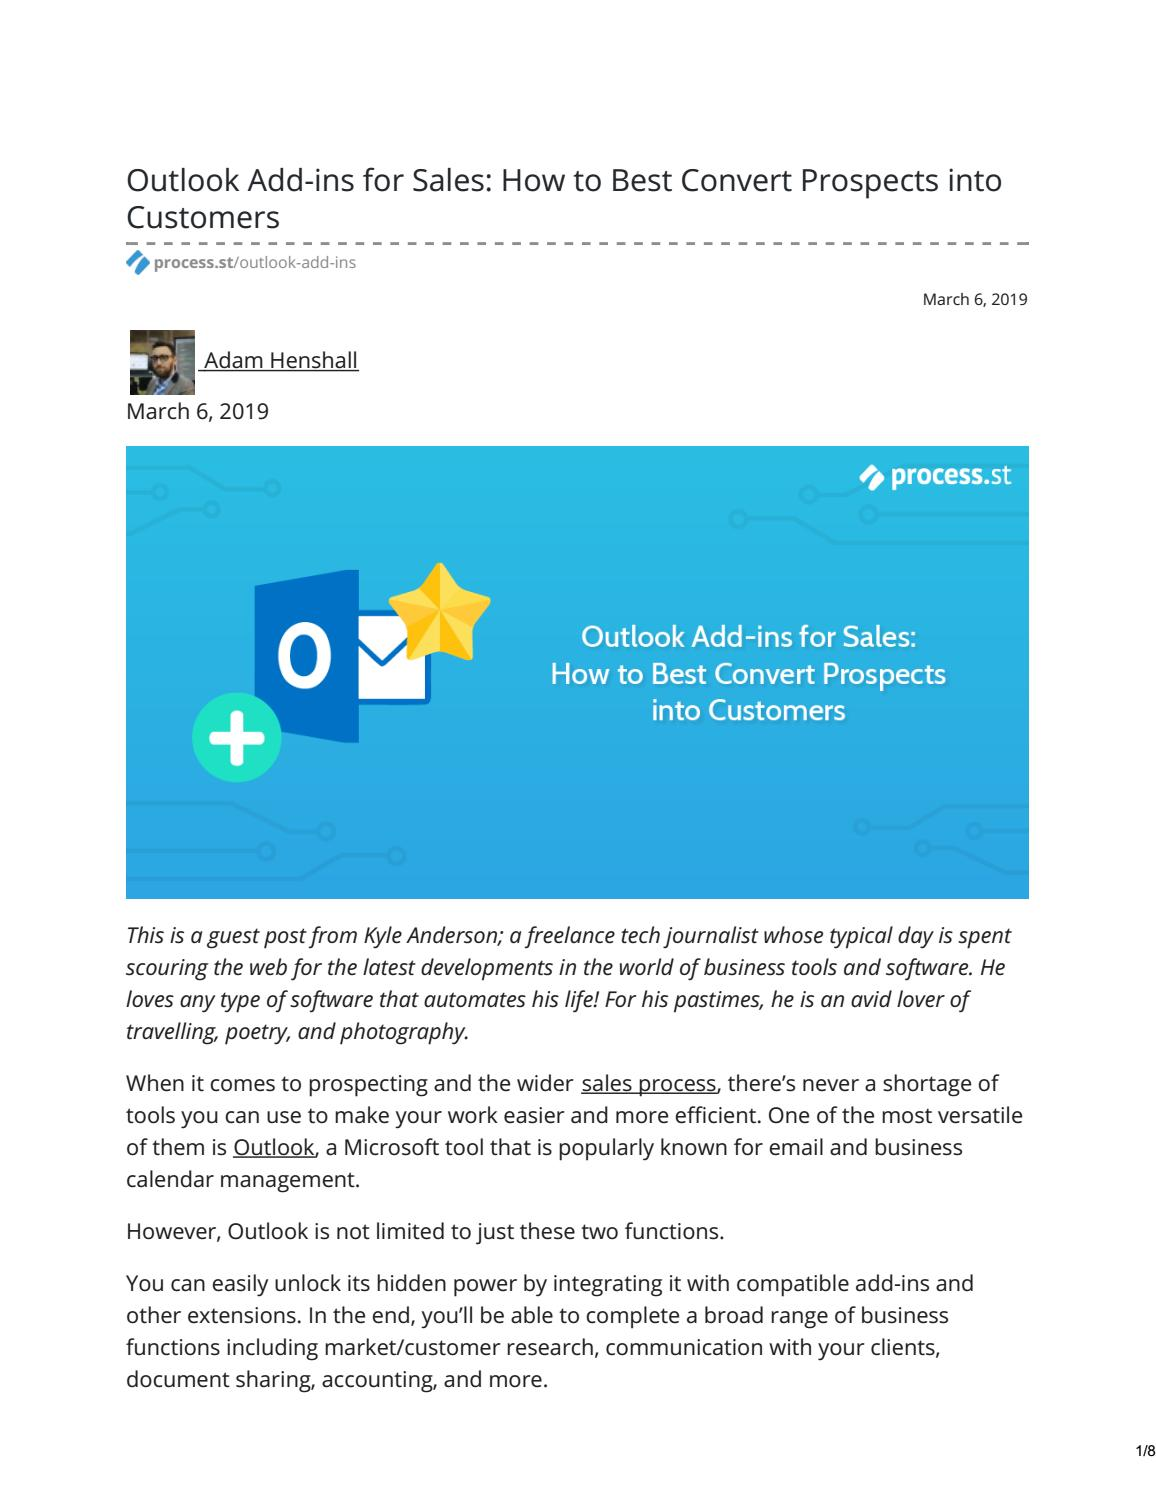 Outlook Add-ins for Sales: How to Best Convert Prospects